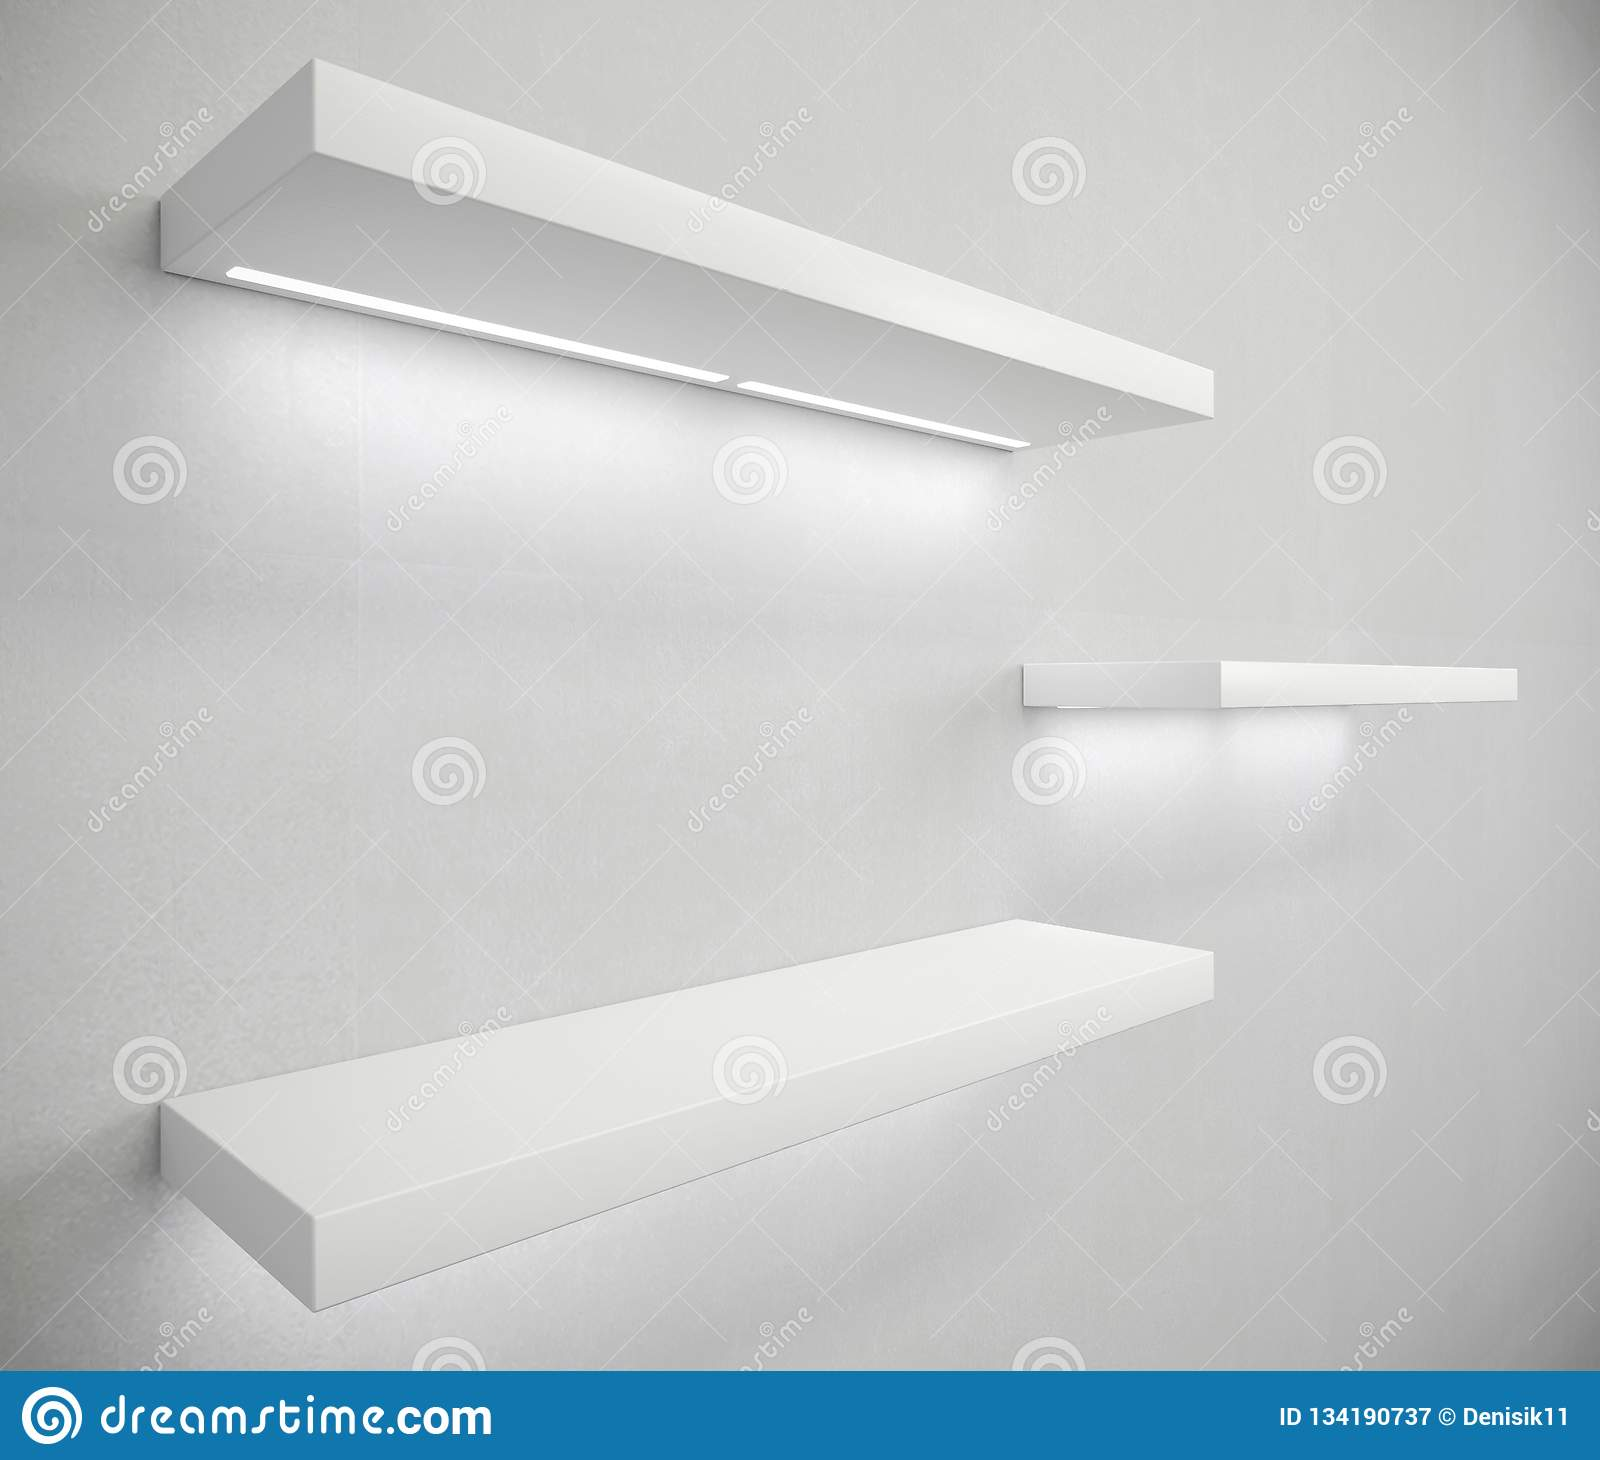 Furniture White Shelves For Home Or Shop Stock